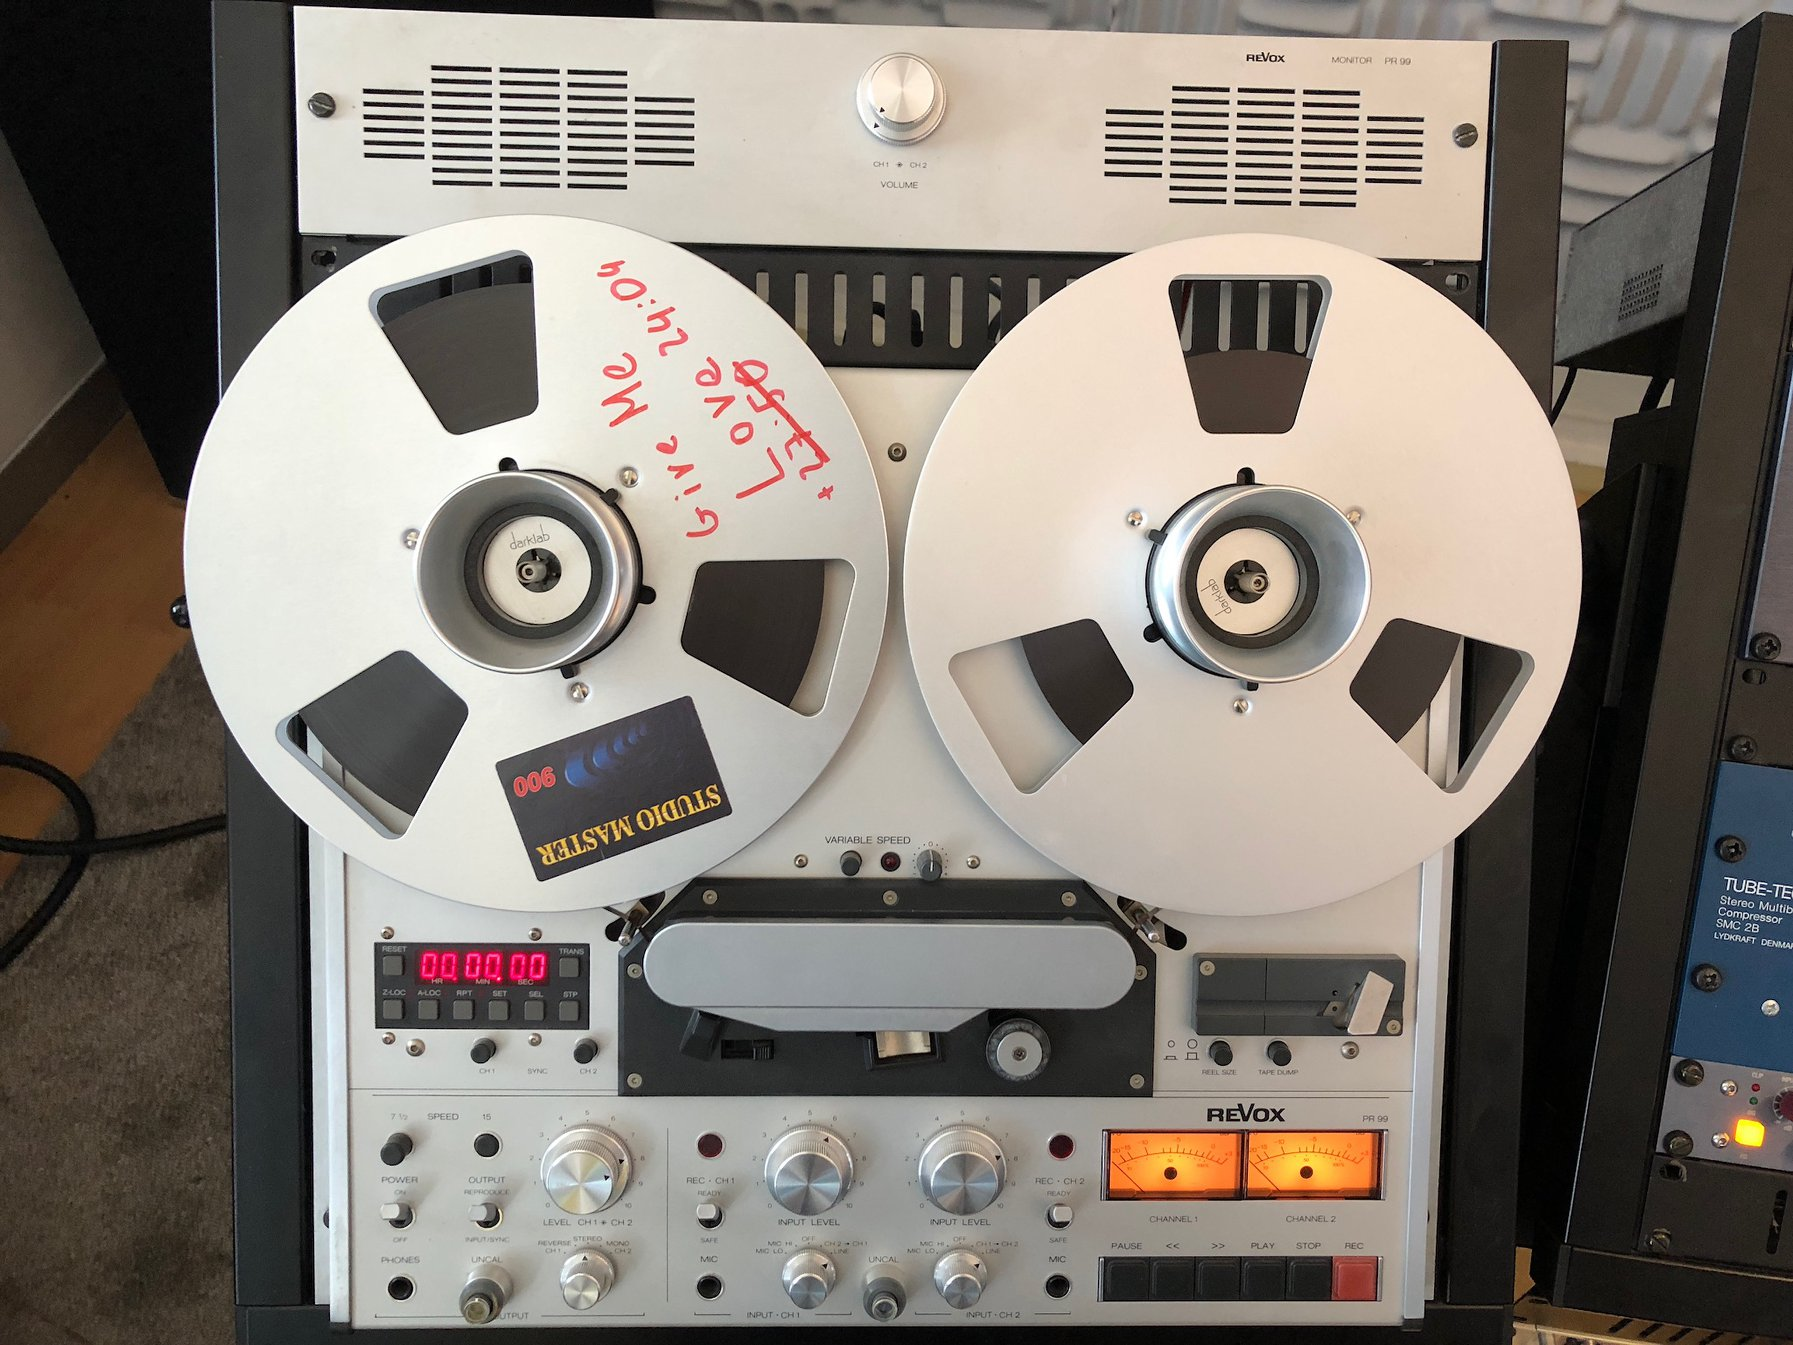 Revox PR99: specially calibrated for tape saturation. I almost use Studio-Master 900 tapes. Nothing is comparable to real tape saturation and sound. Foto: Privat